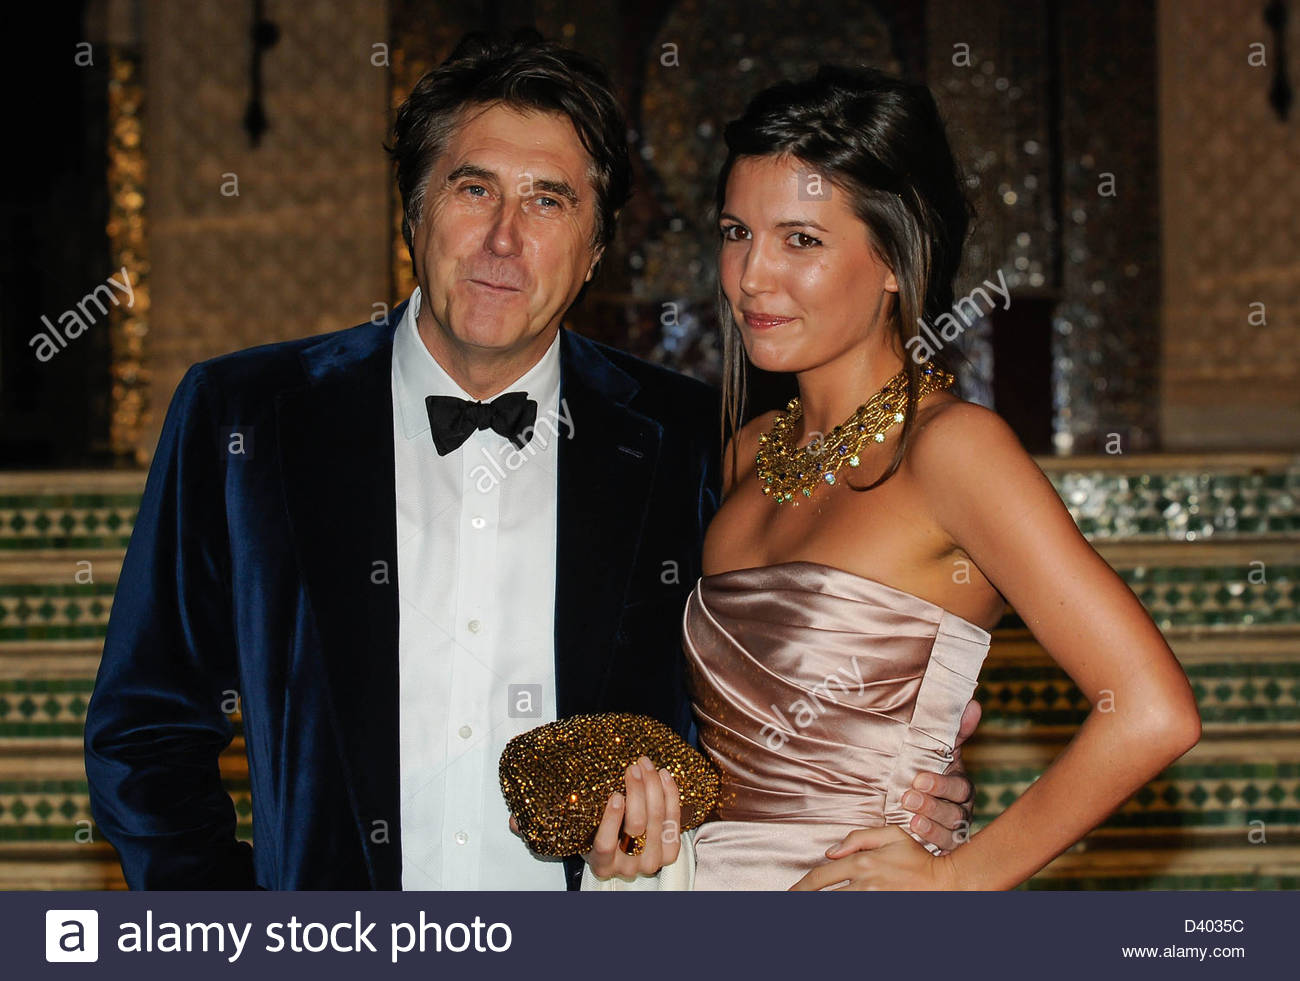 bryan ferry stock photos bryan ferry stock images alamy. Black Bedroom Furniture Sets. Home Design Ideas